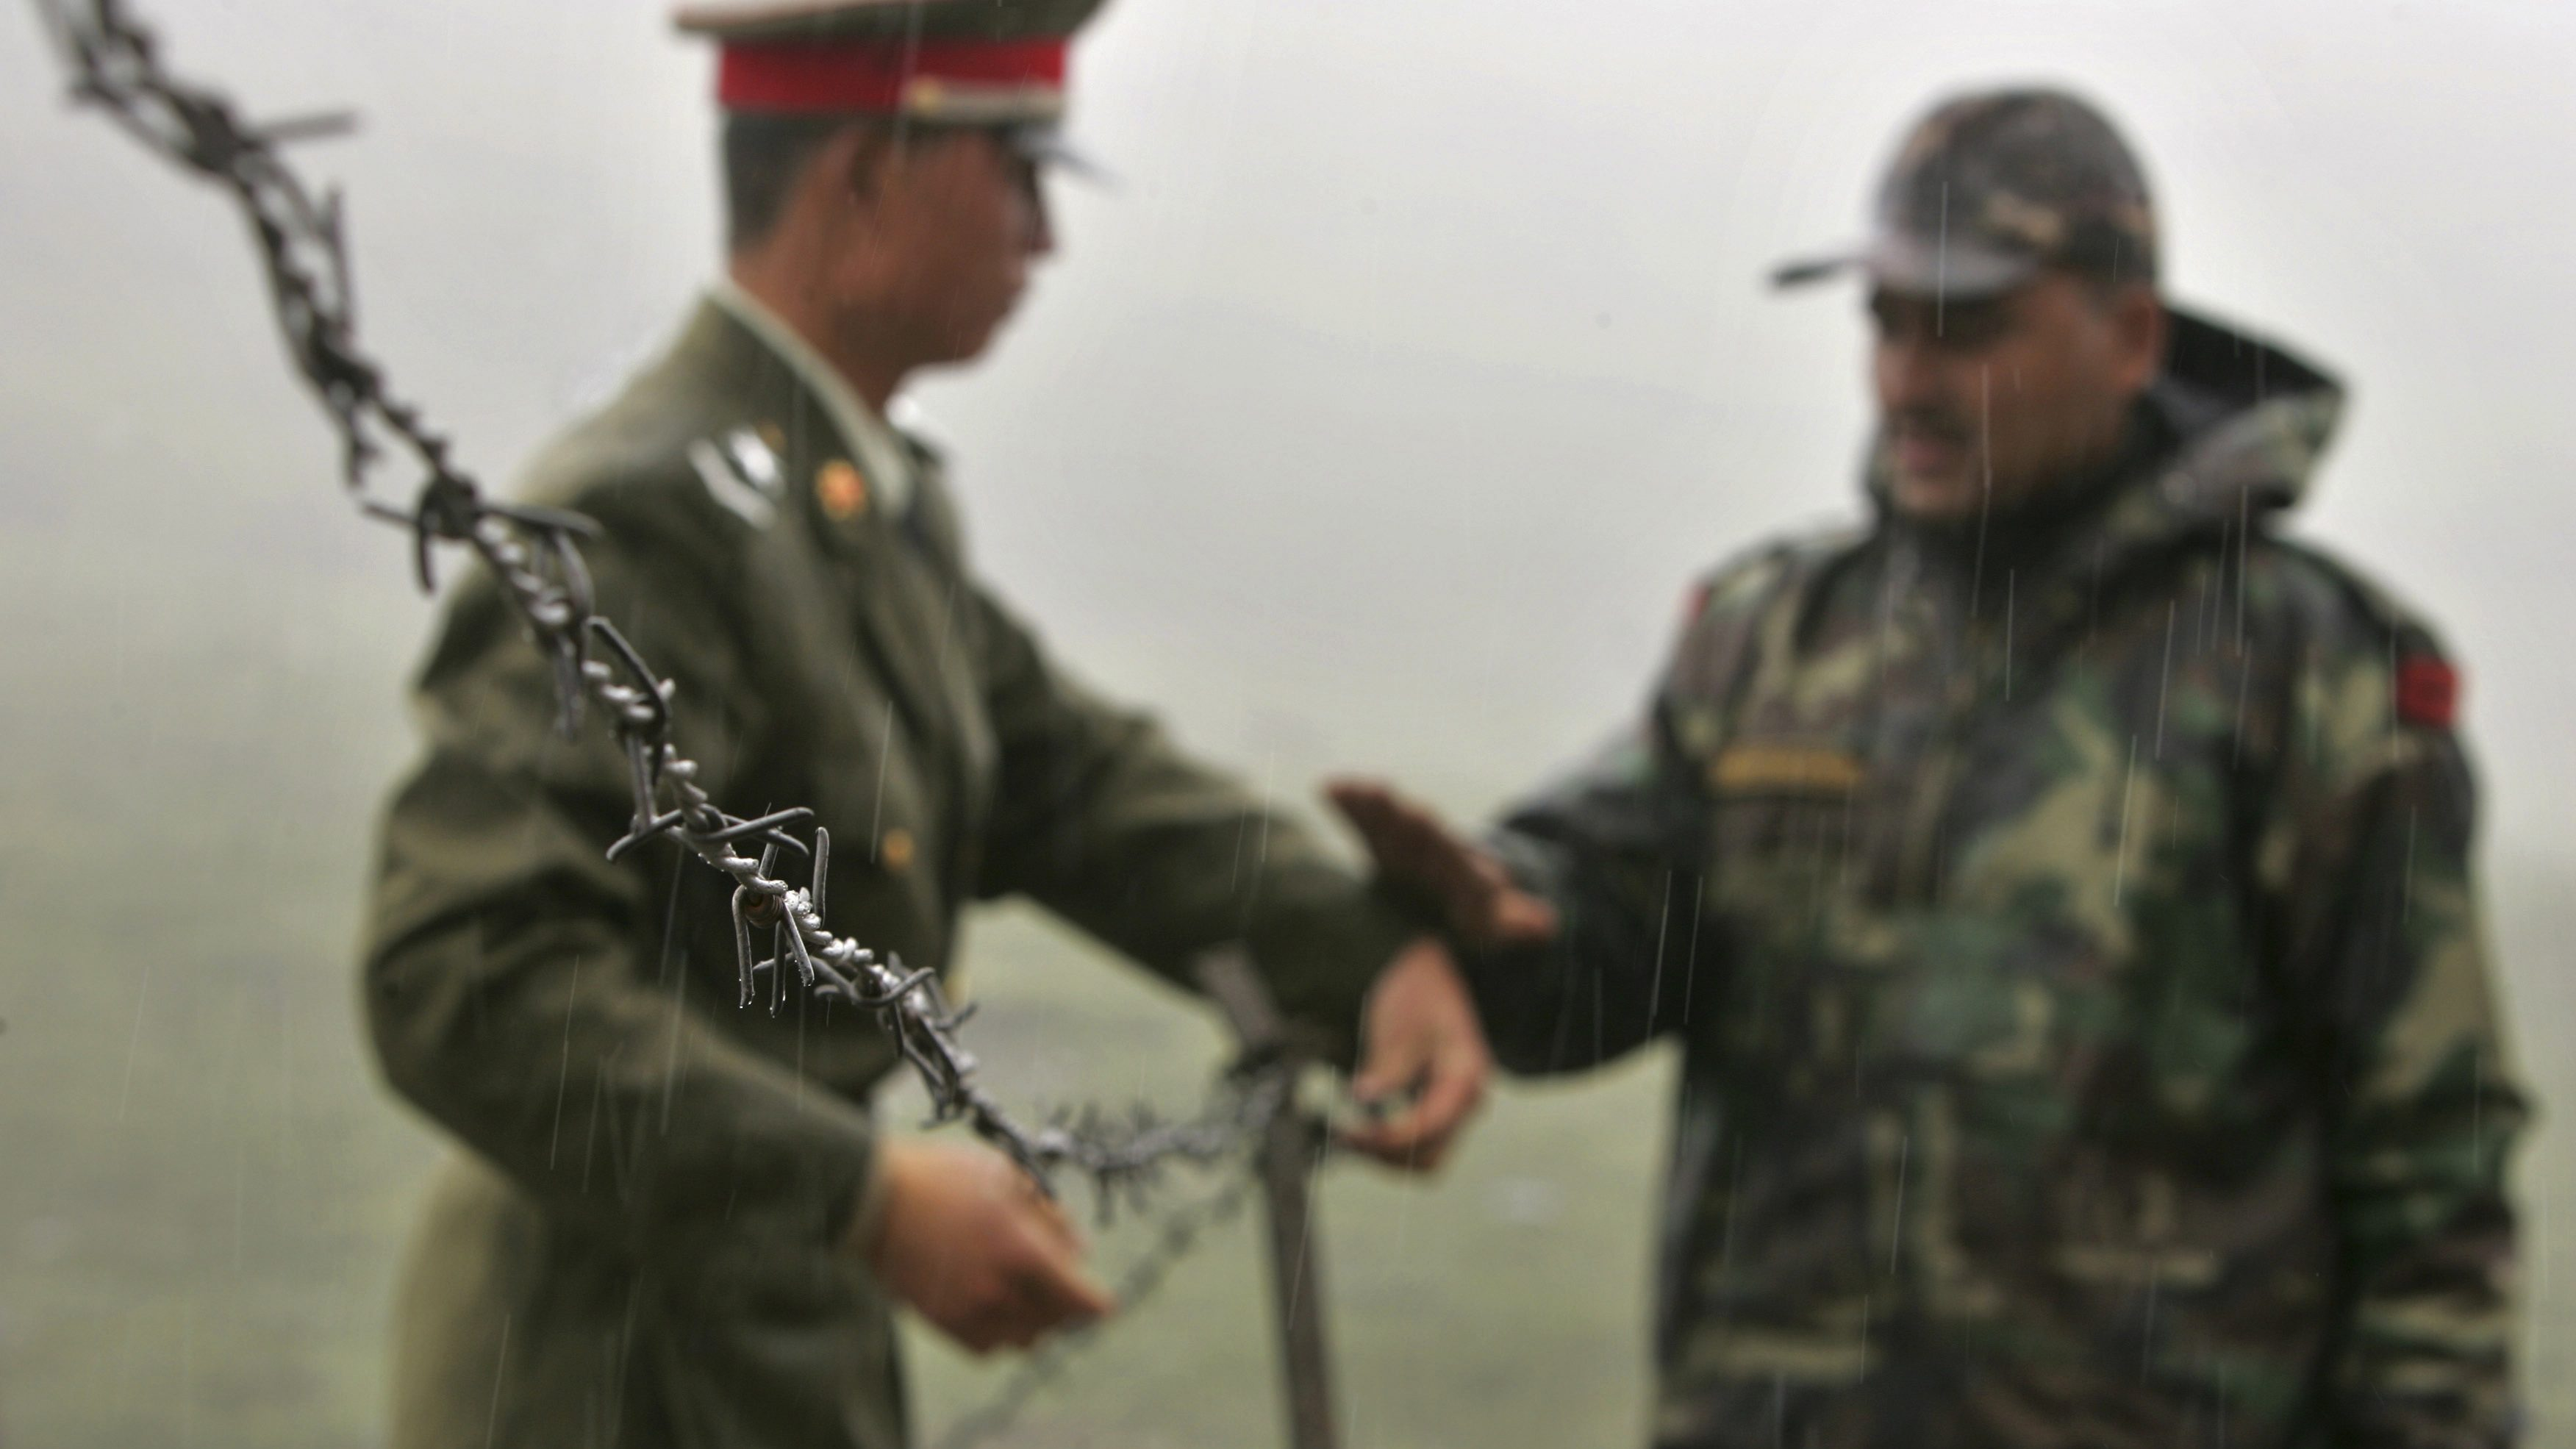 FILE - In this July 5, 2006 file photo, a Chinese soldier, left, and an Indian soldier put into place a barbed wire fence removed temporarily for Chinese officials to cross back to their country after a meeting with their Indian counterparts at the international border at Nathula Pass, in northeastern Indian state of Sikkim. While the recent troop standoff in a remote Himalayan desert spotlights a long-running border dispute between China and India, the two emerging giants are engaged in a rivalry for global influence that spreads much farther afield.